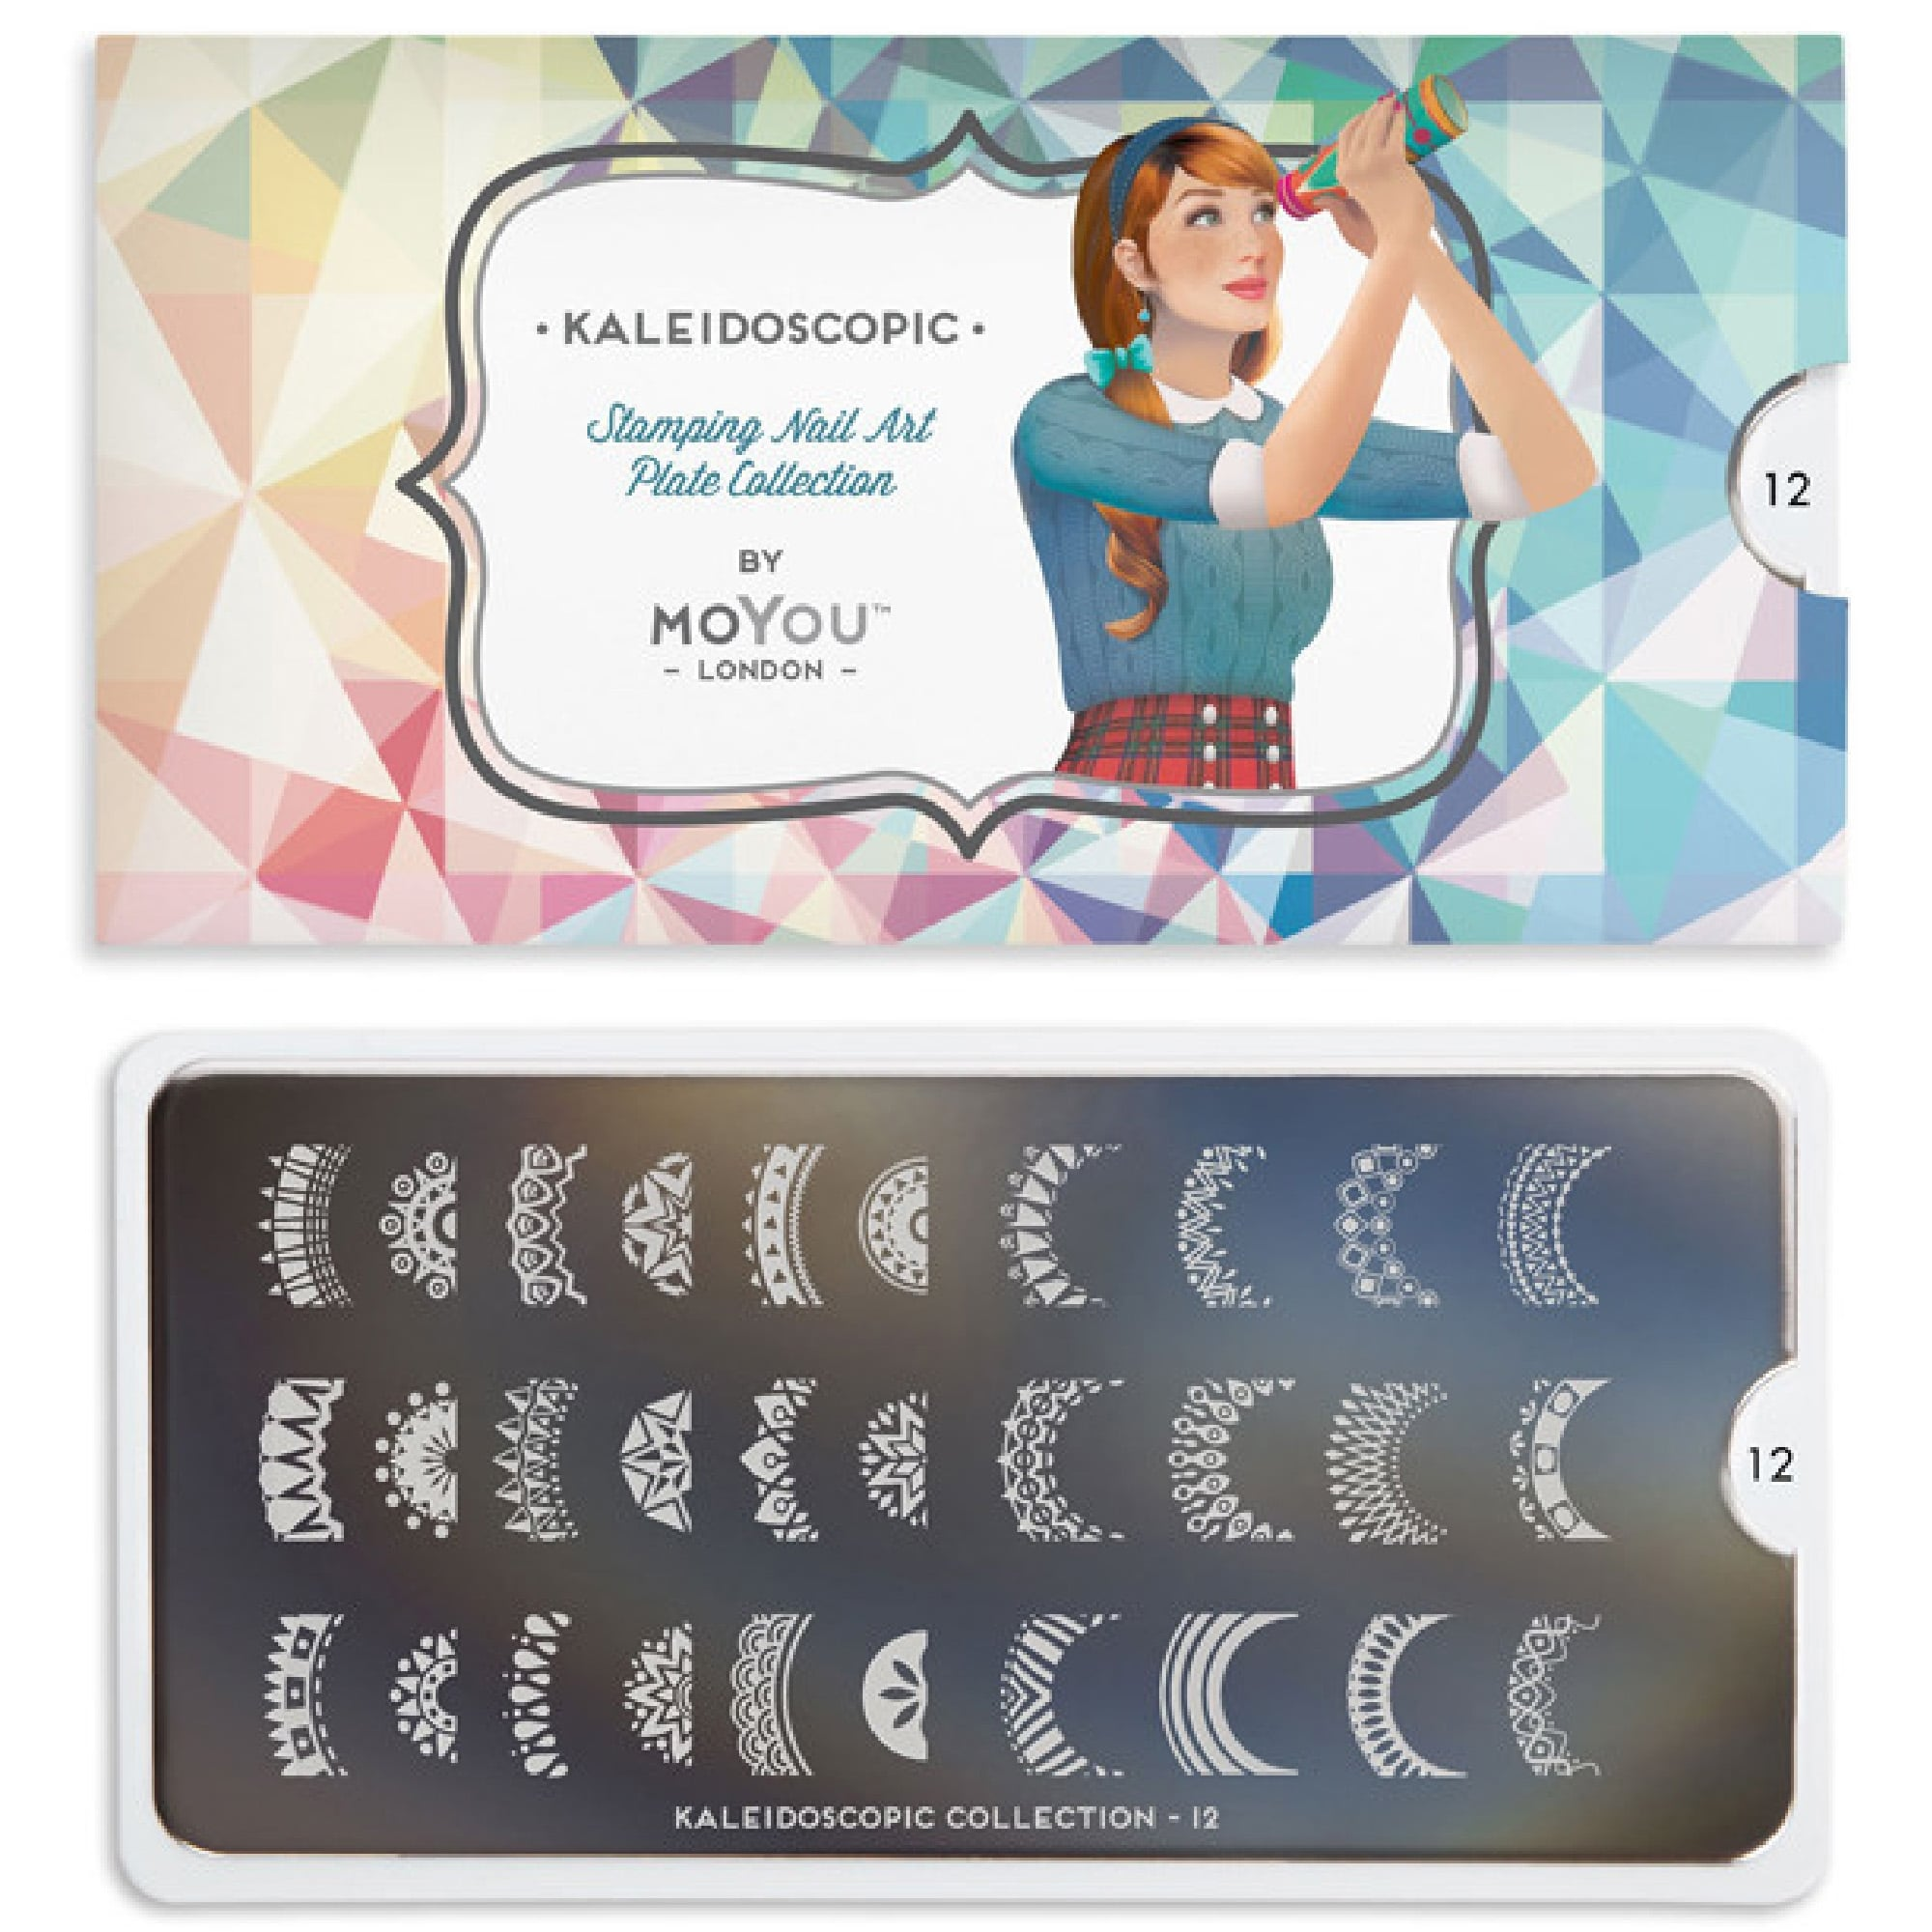 Obsession lacquer tiedye nail art 9 nail art ideas for lazy girls konad moyou lcn nail art stamping plates pens buy online uk nail art nottingham prinsesfo Gallery